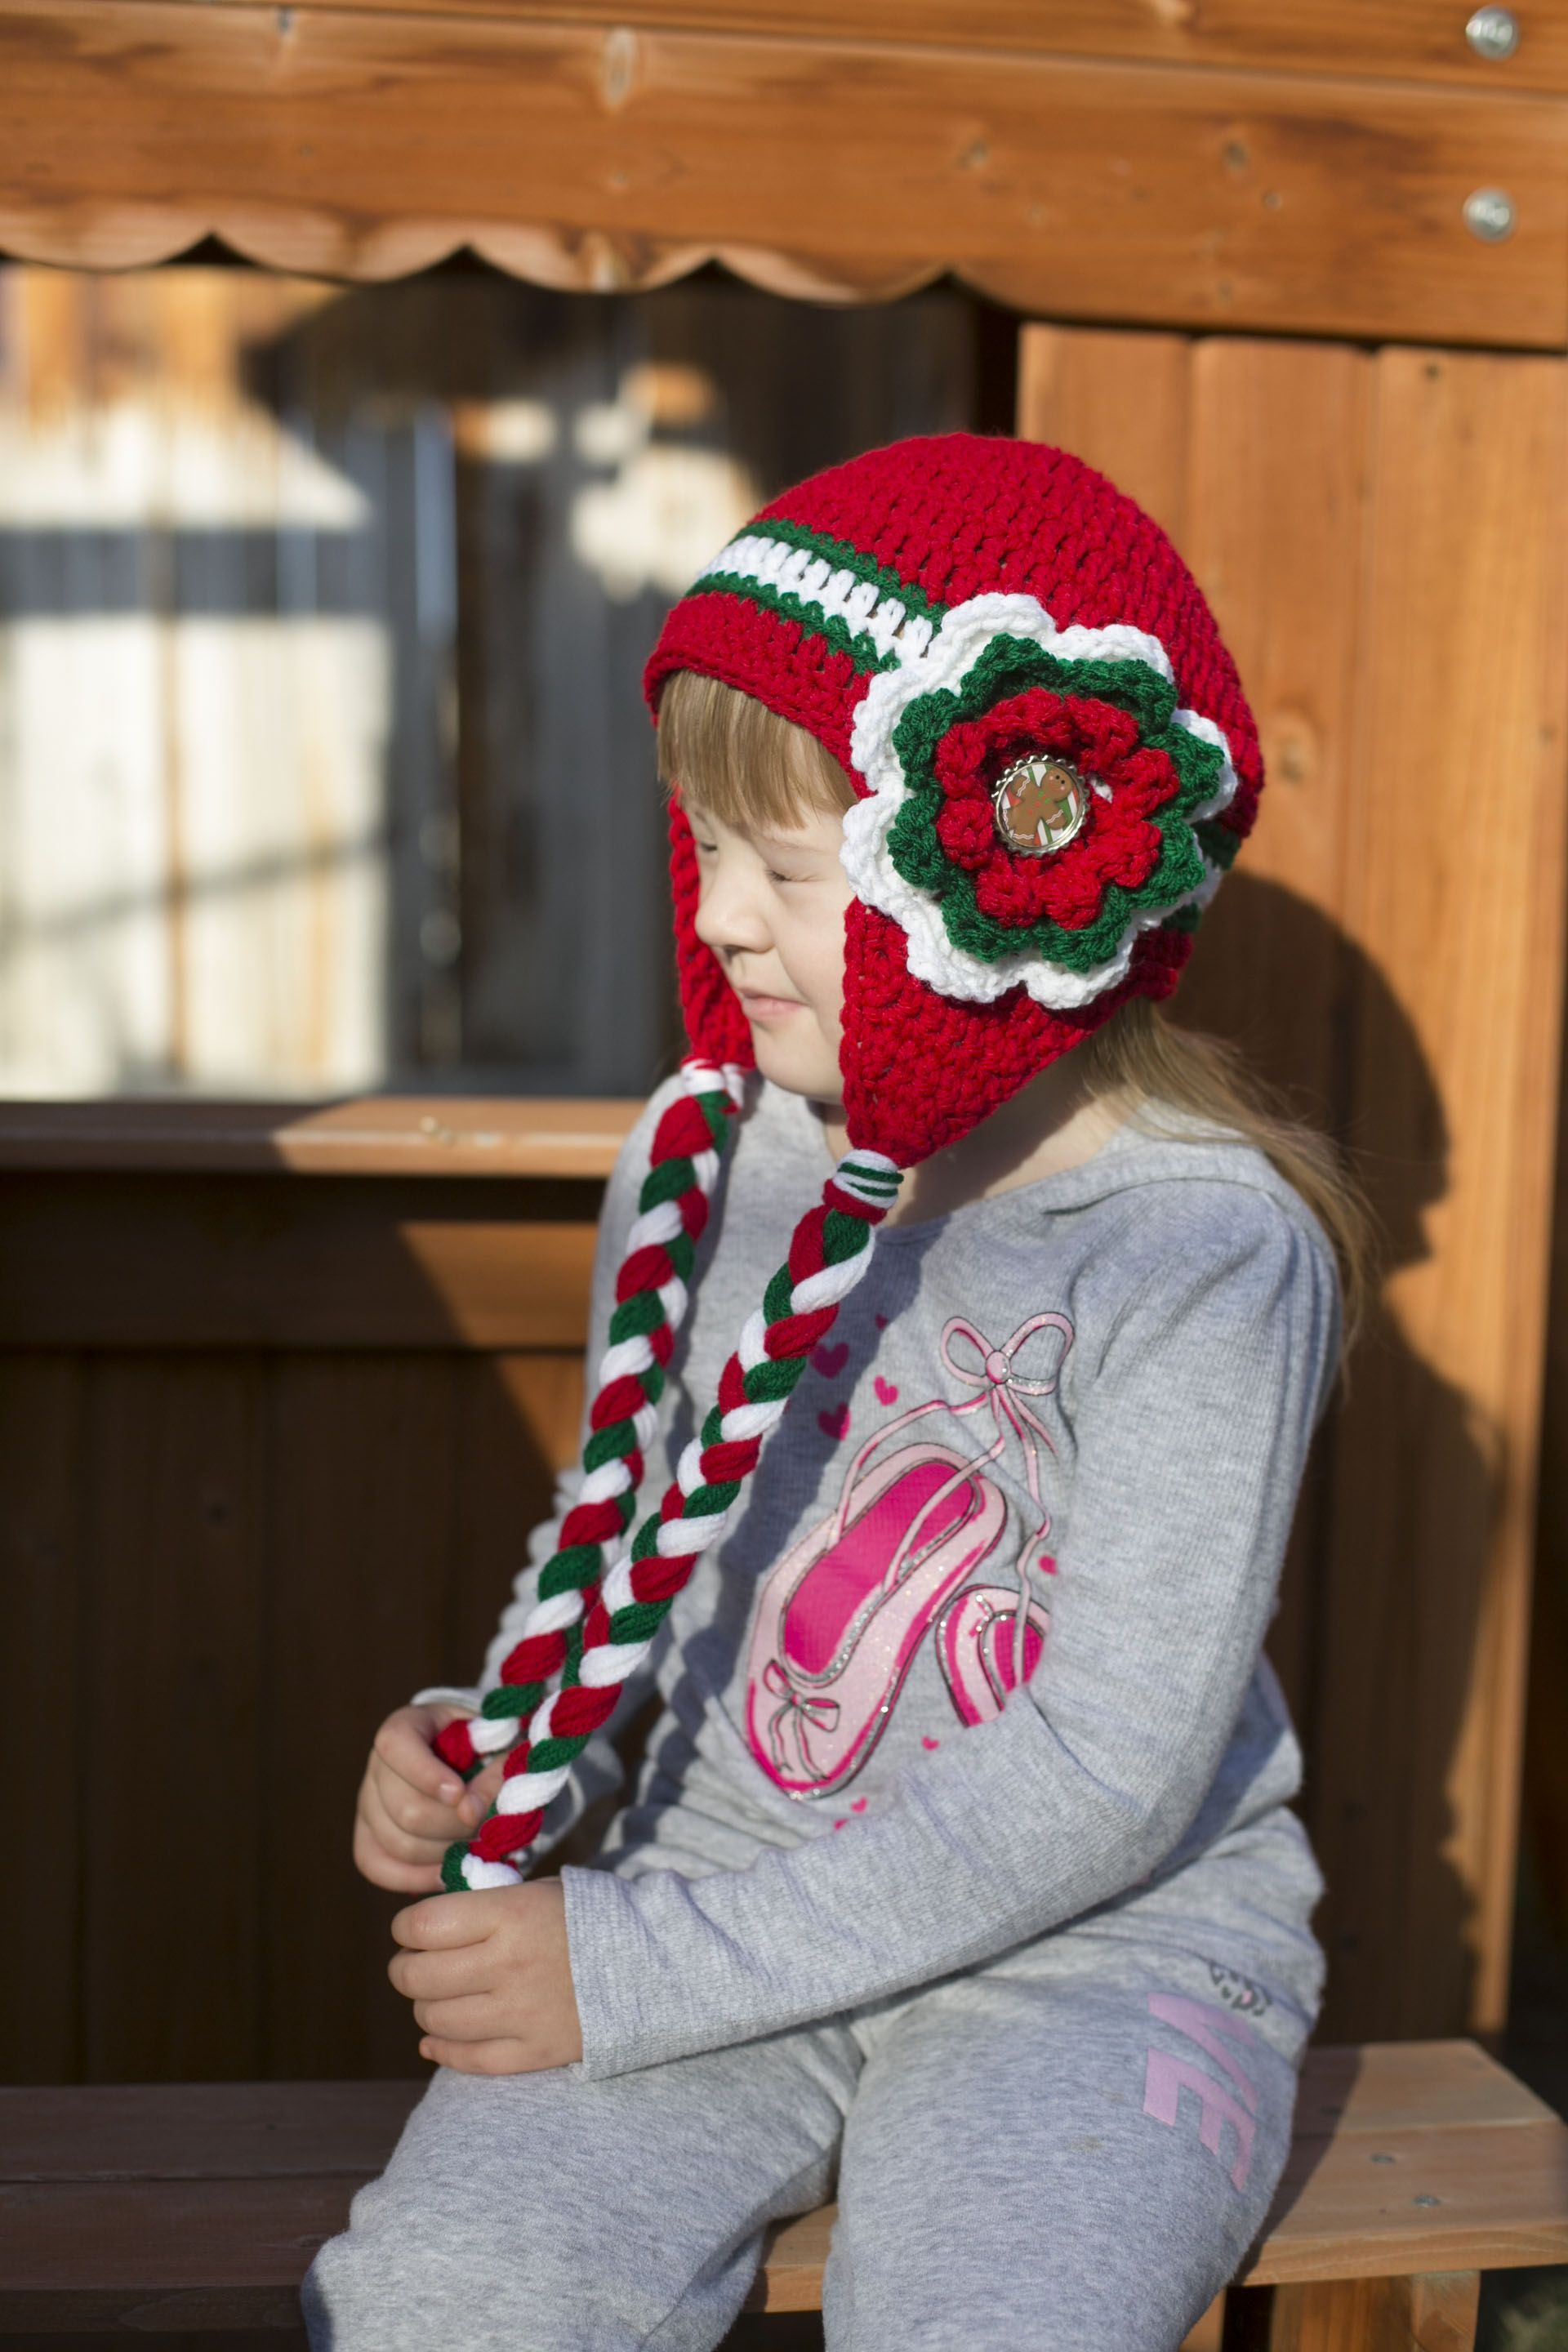 crochet Christmas beanie hat with flower, red white and green, Holiday hats for kids https://www.etsy.com/listing/208710914/christmas-crochet-beanie-red-beanie-with?ref=shop_home_active_7